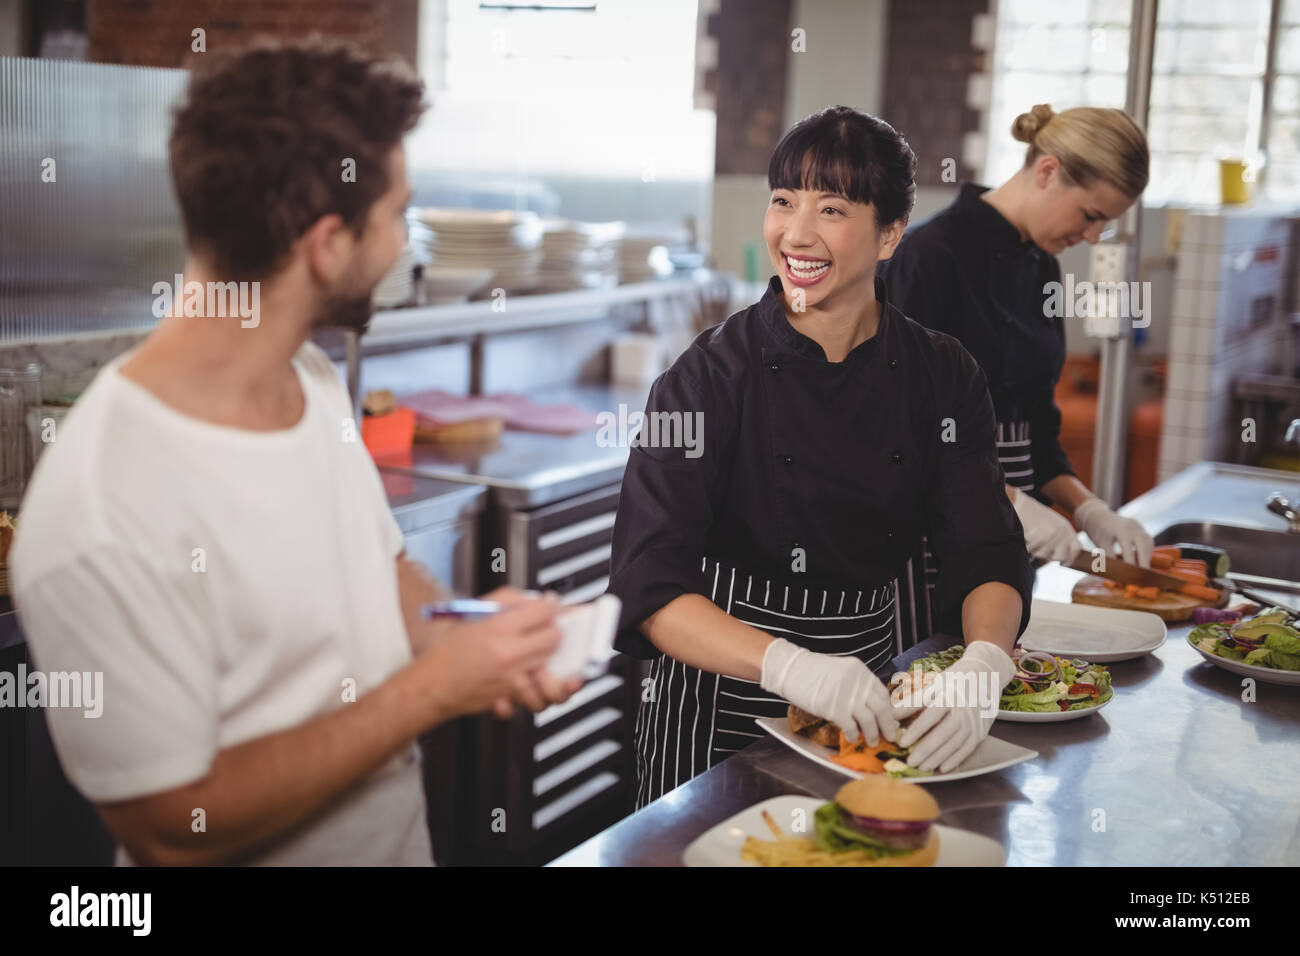 Cheerful waiter et female chef working in kitchen at cafe Banque D'Images